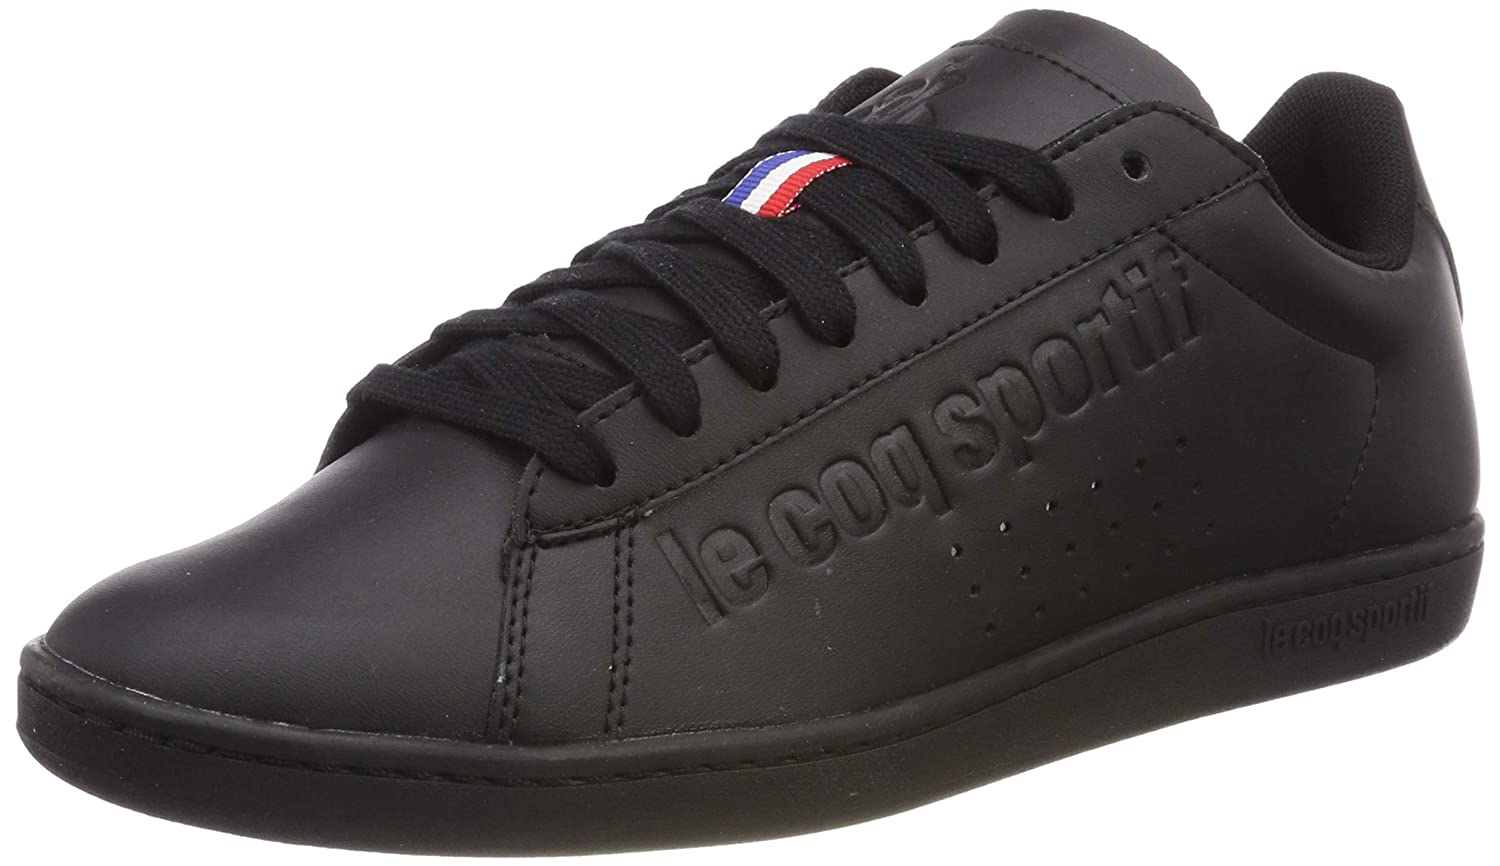 Le Coq Sportif Courtset Triple Black, Zapatillas Unisex Adulto